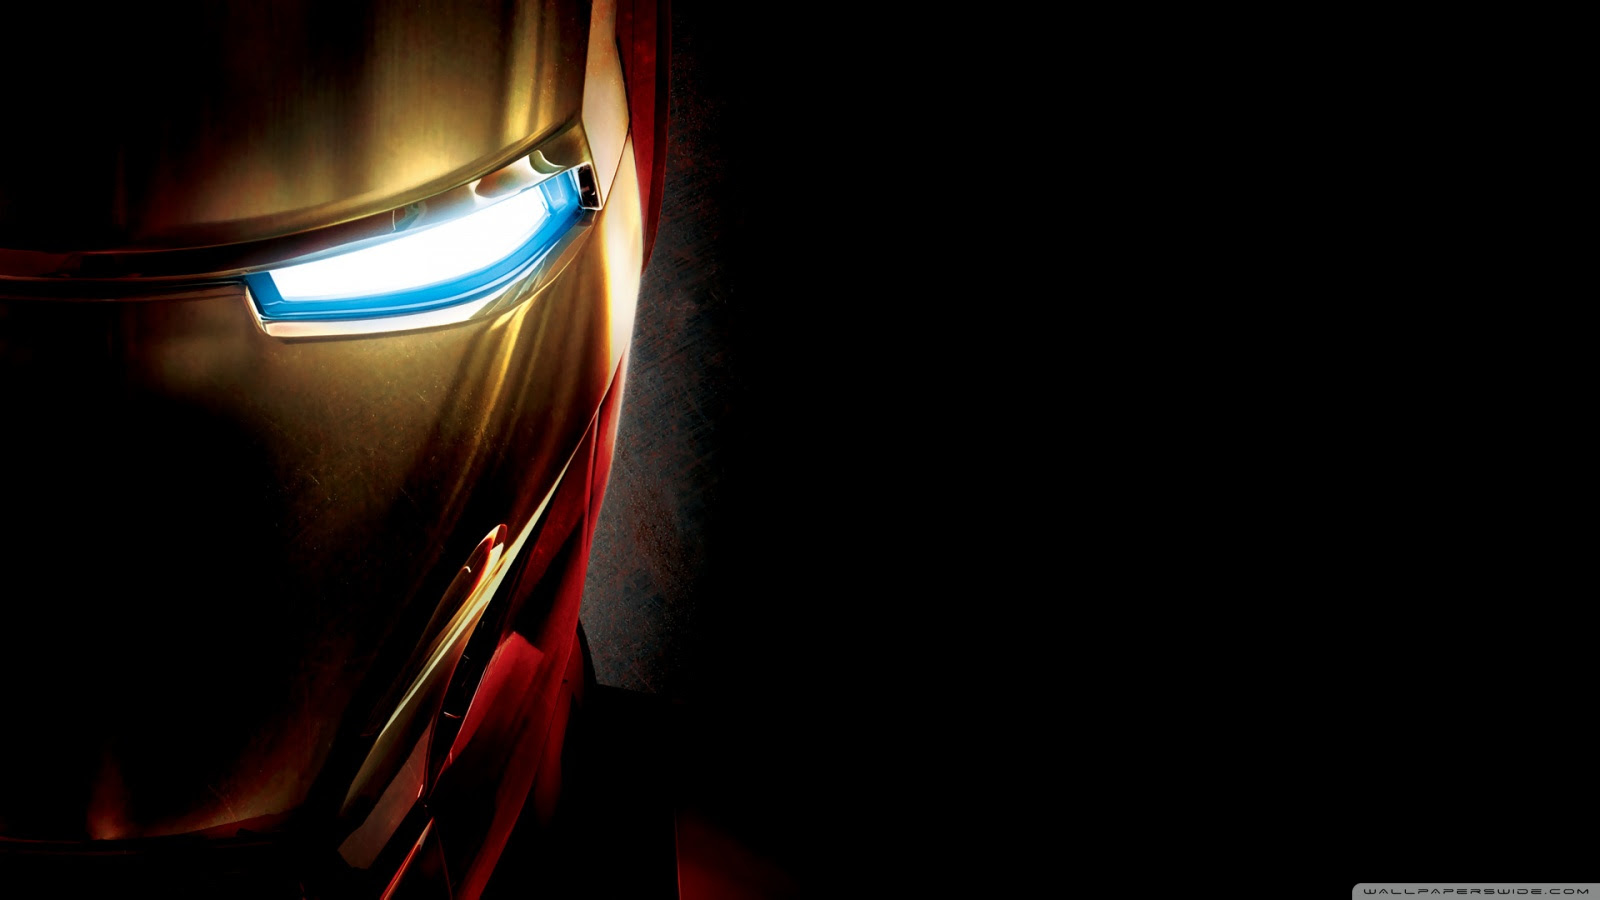 Iron Man Wallpaper Hd Pack Wallpapers